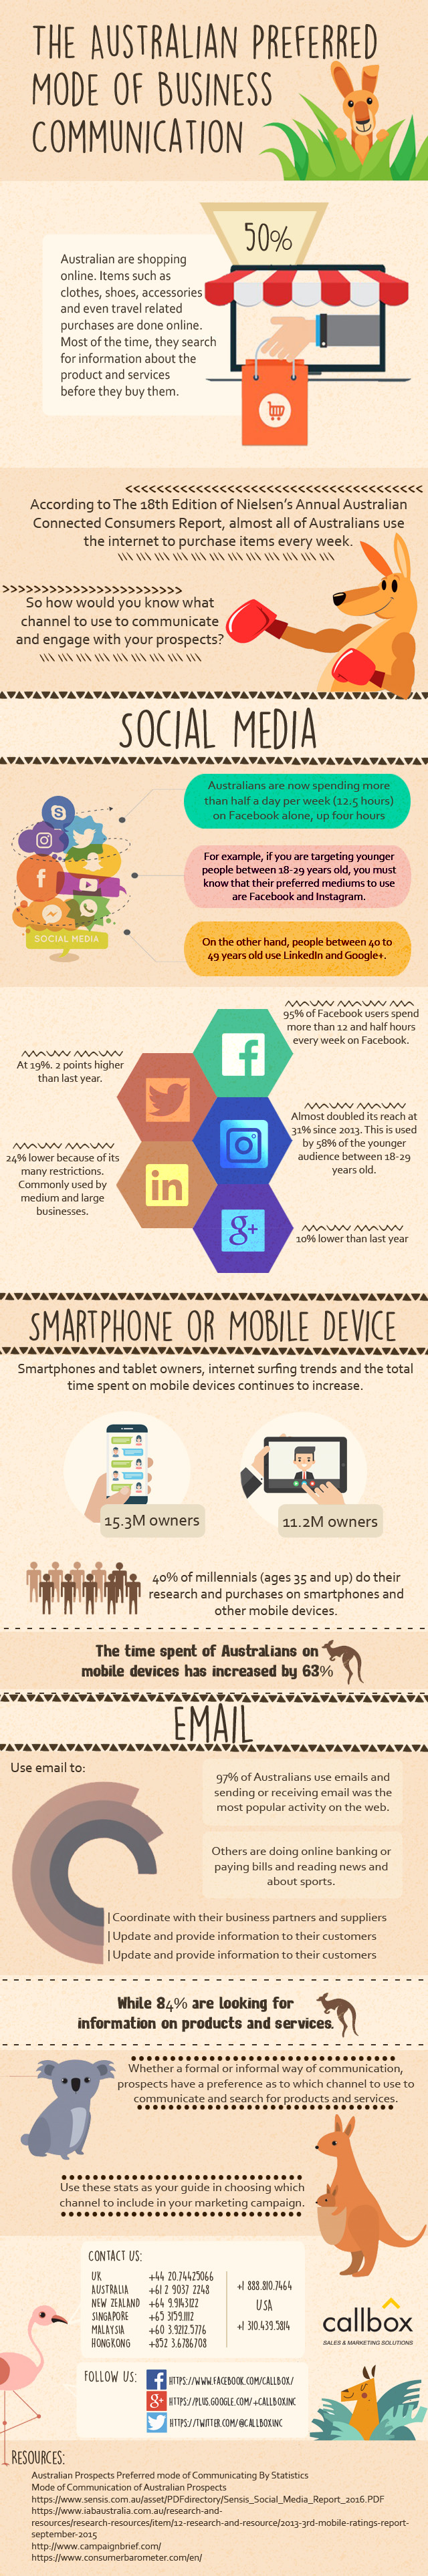 The Australian Preferred Mode of Business Communication - infographic